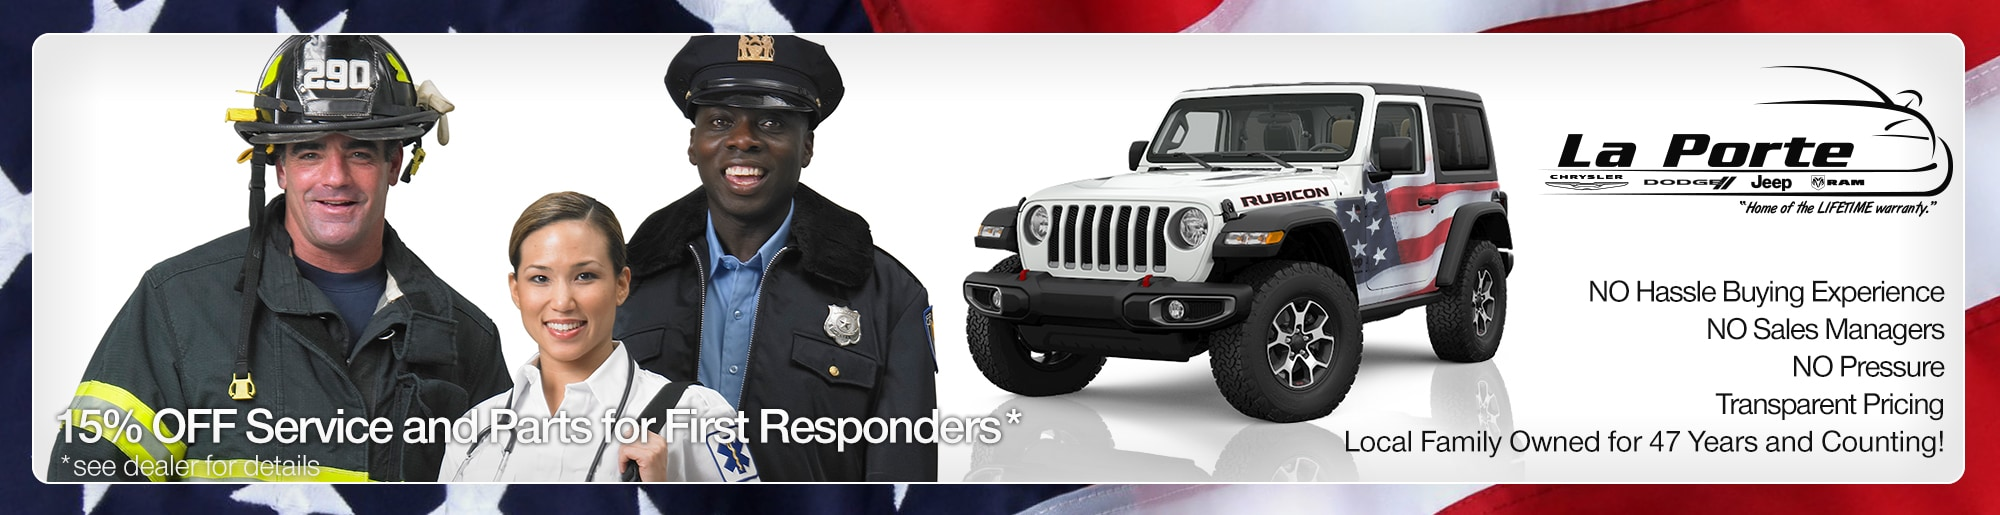 15% off service and parts for first responders